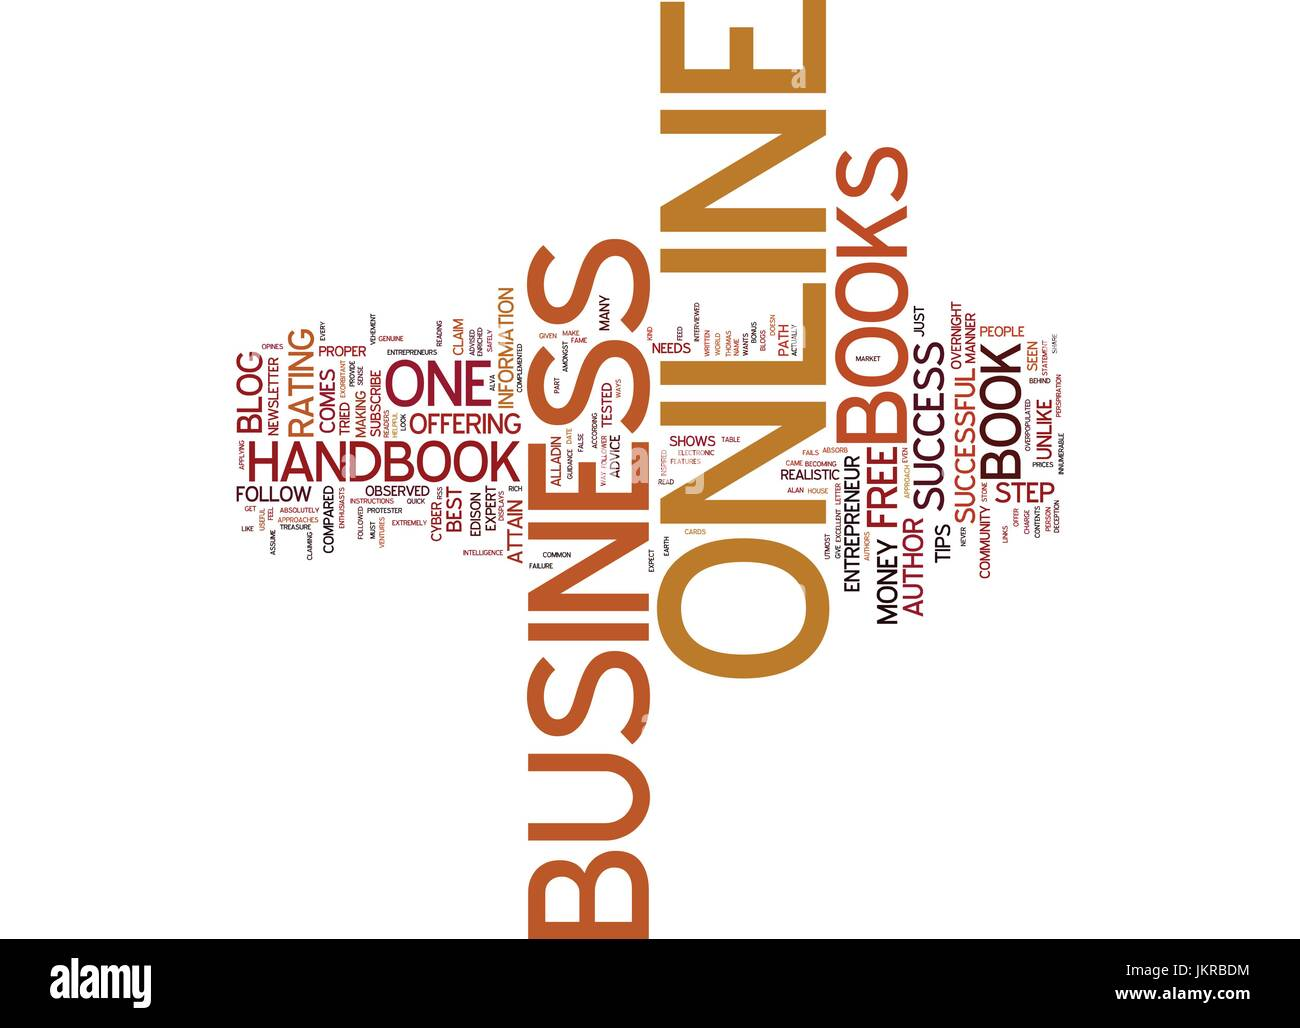 THE ONLINE BUSINESS HANDBOOK A MUST READ FOR ONLINE ENTREPRENEURS Text Background Word Cloud Concept - Stock Vector